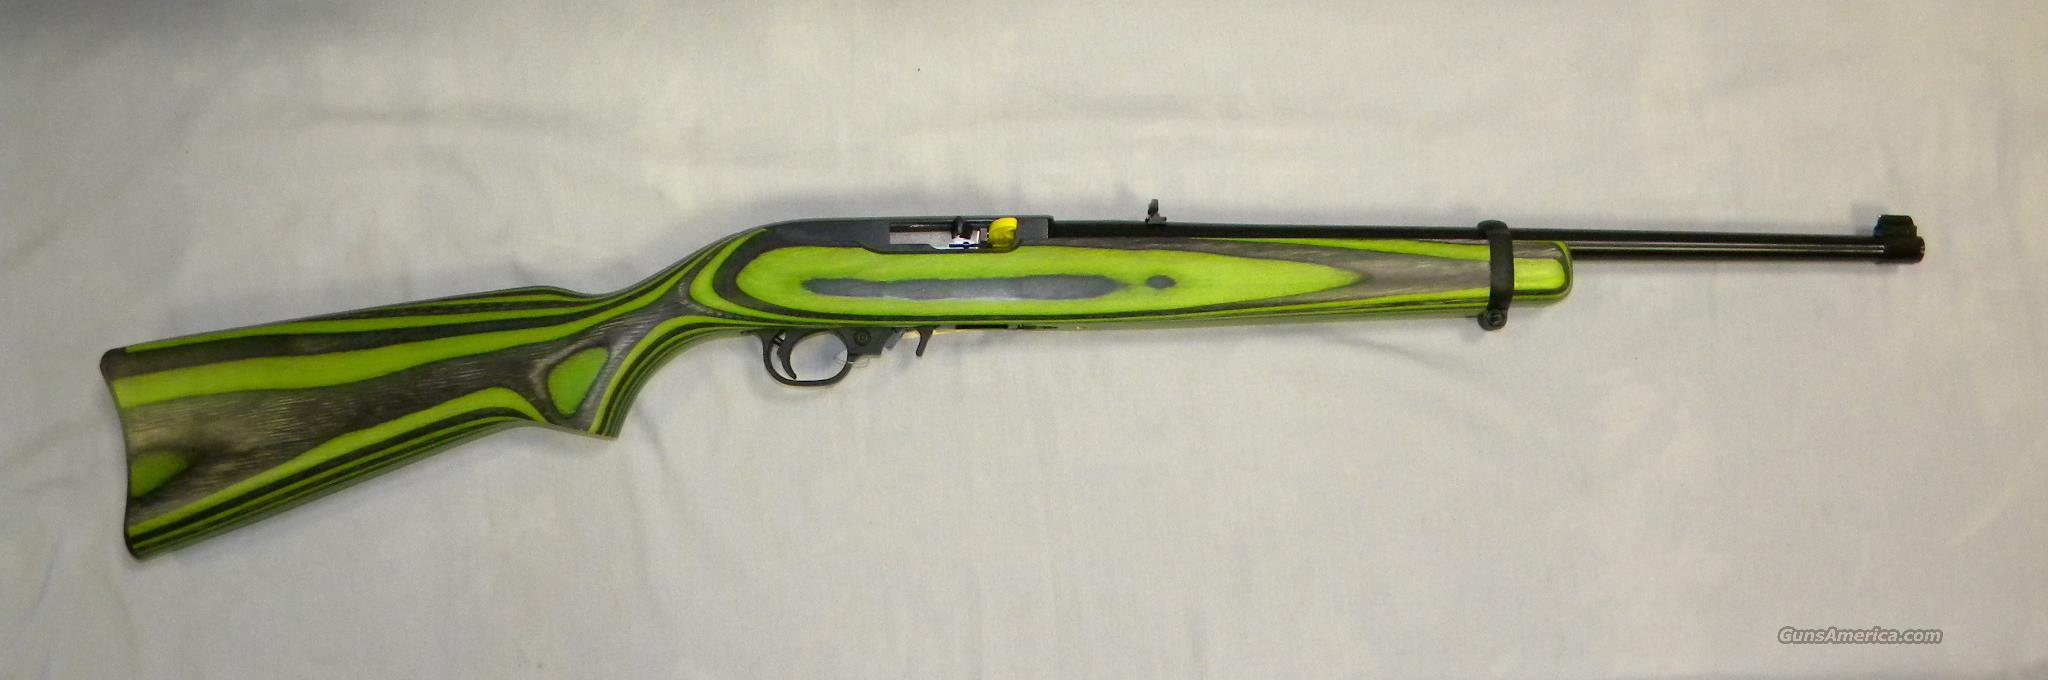 Ruger 10 22 Quot Zombie Quot Green Laminated Stock 2 For Sale